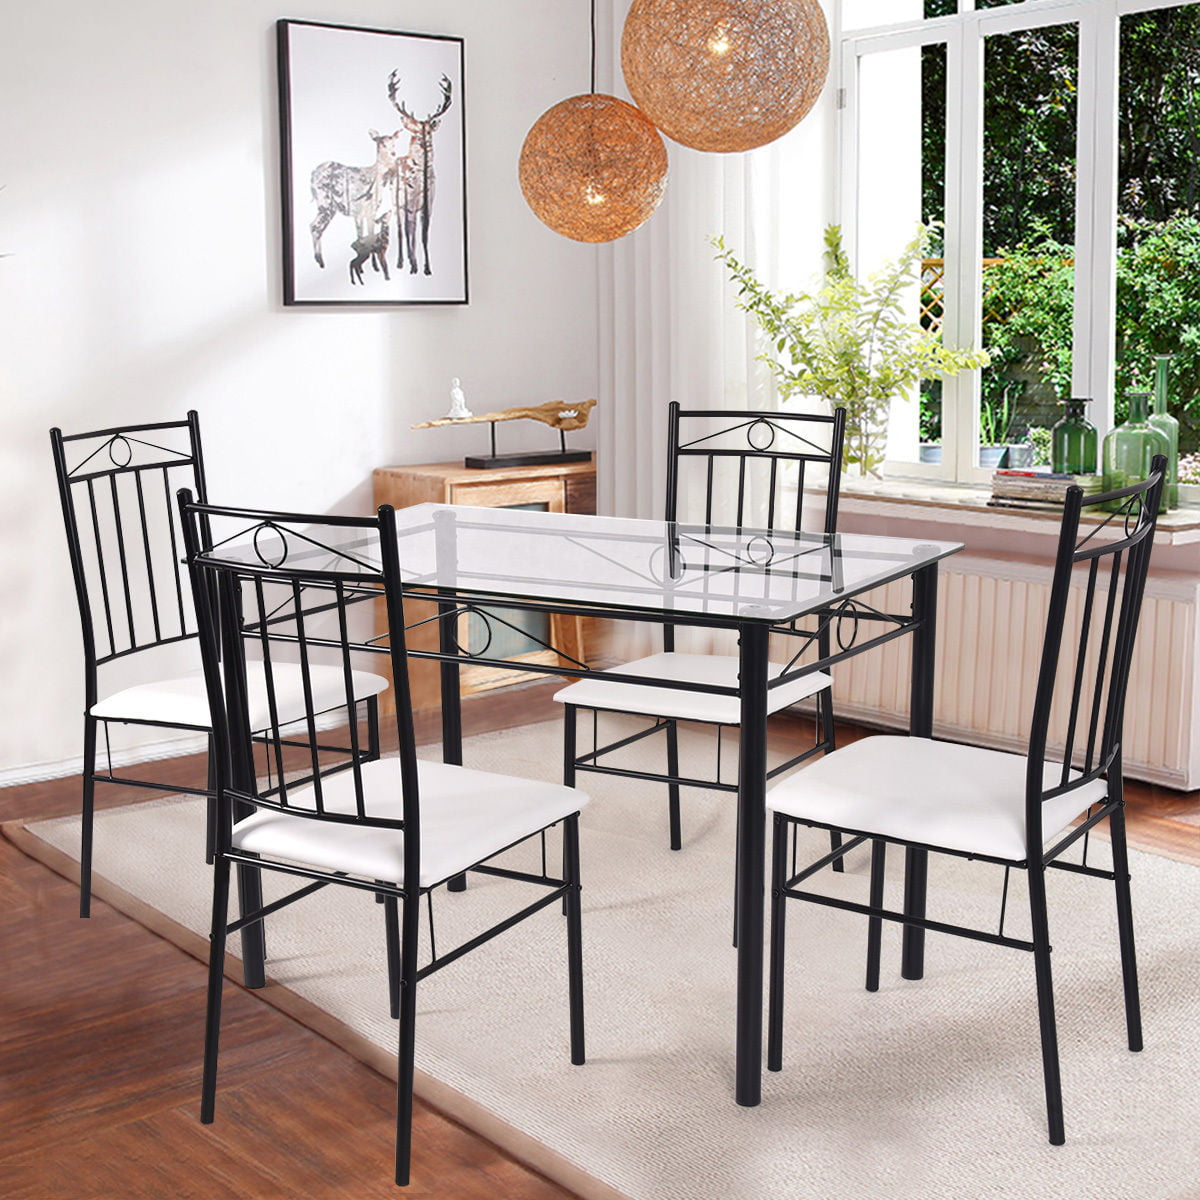 Costway 5 Piece Dining Set Gl Metal Table And 4 Chairs Kitchen Breakfast Furniture